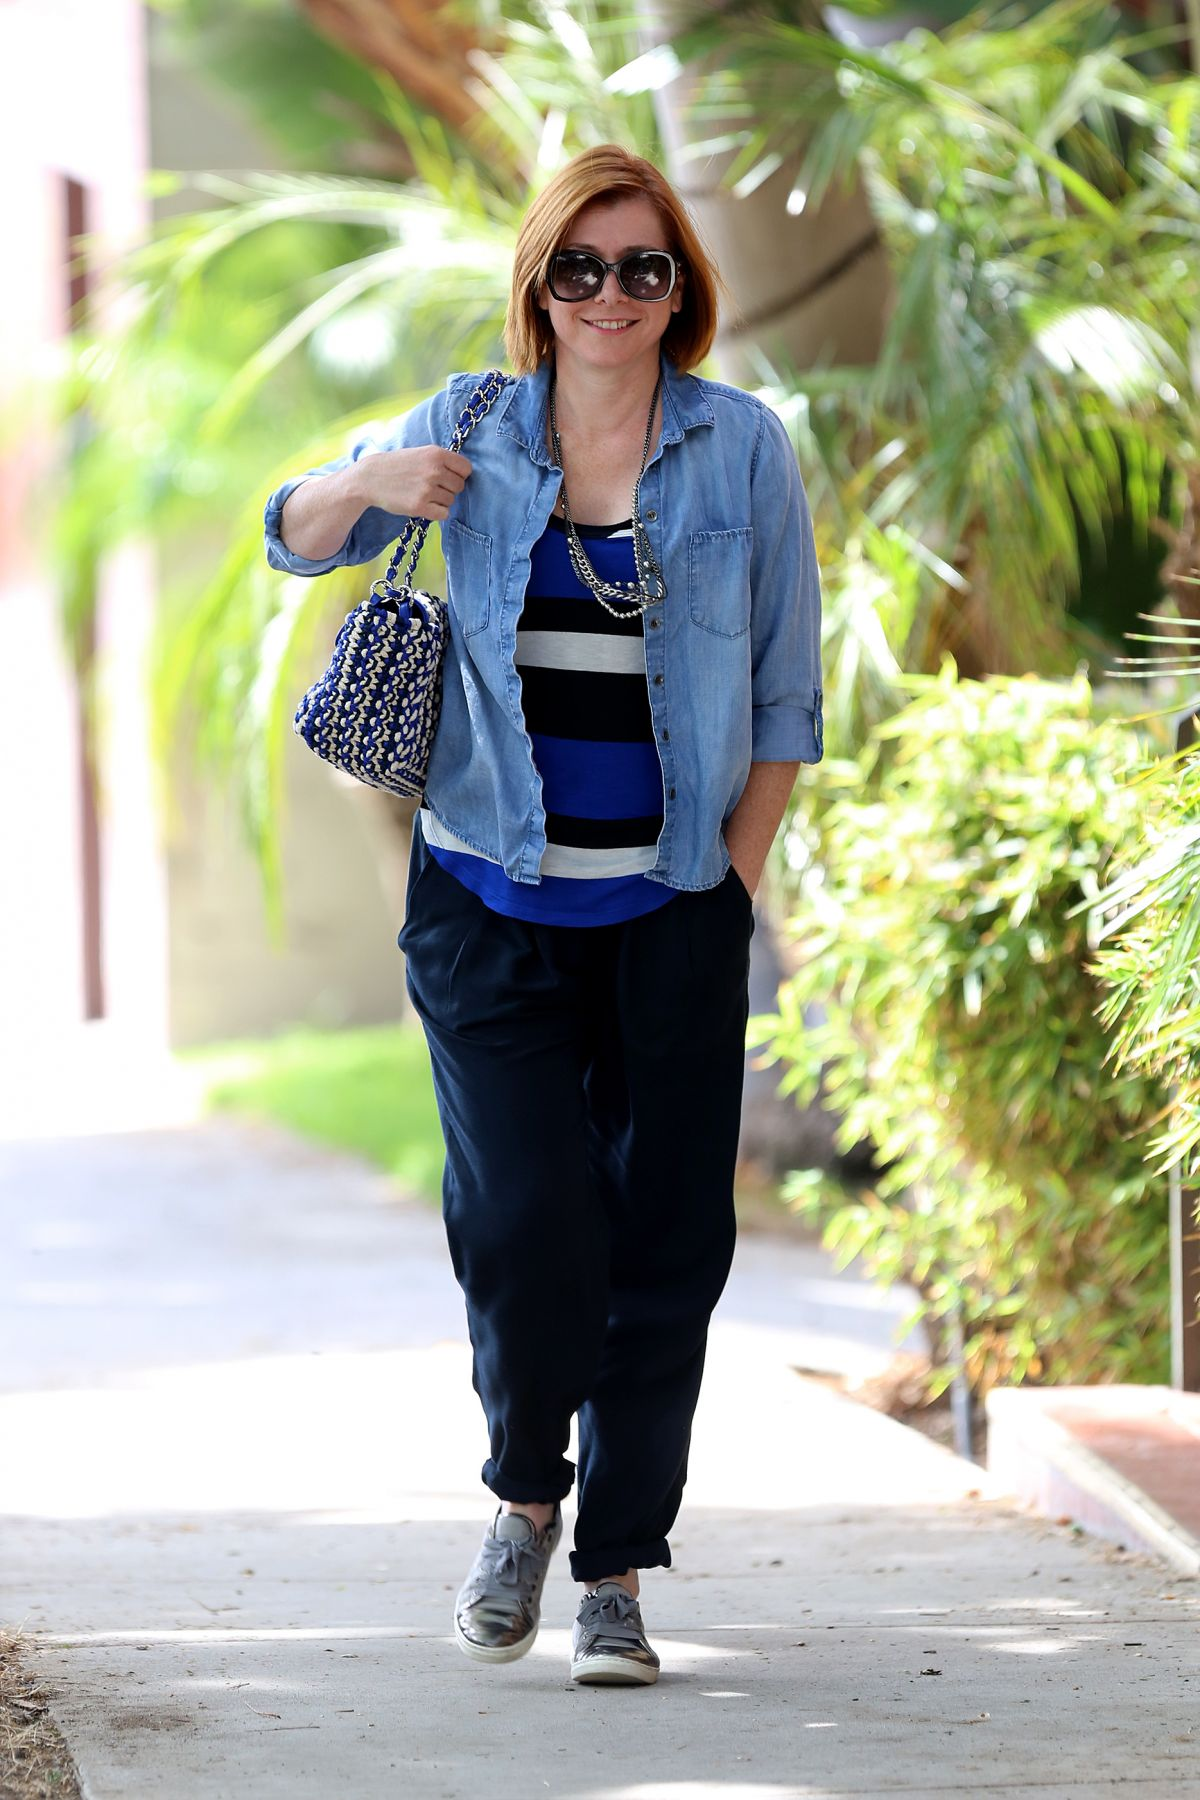 ALYSON HANNIGAN Out and About in Hollywood 09/01/2015